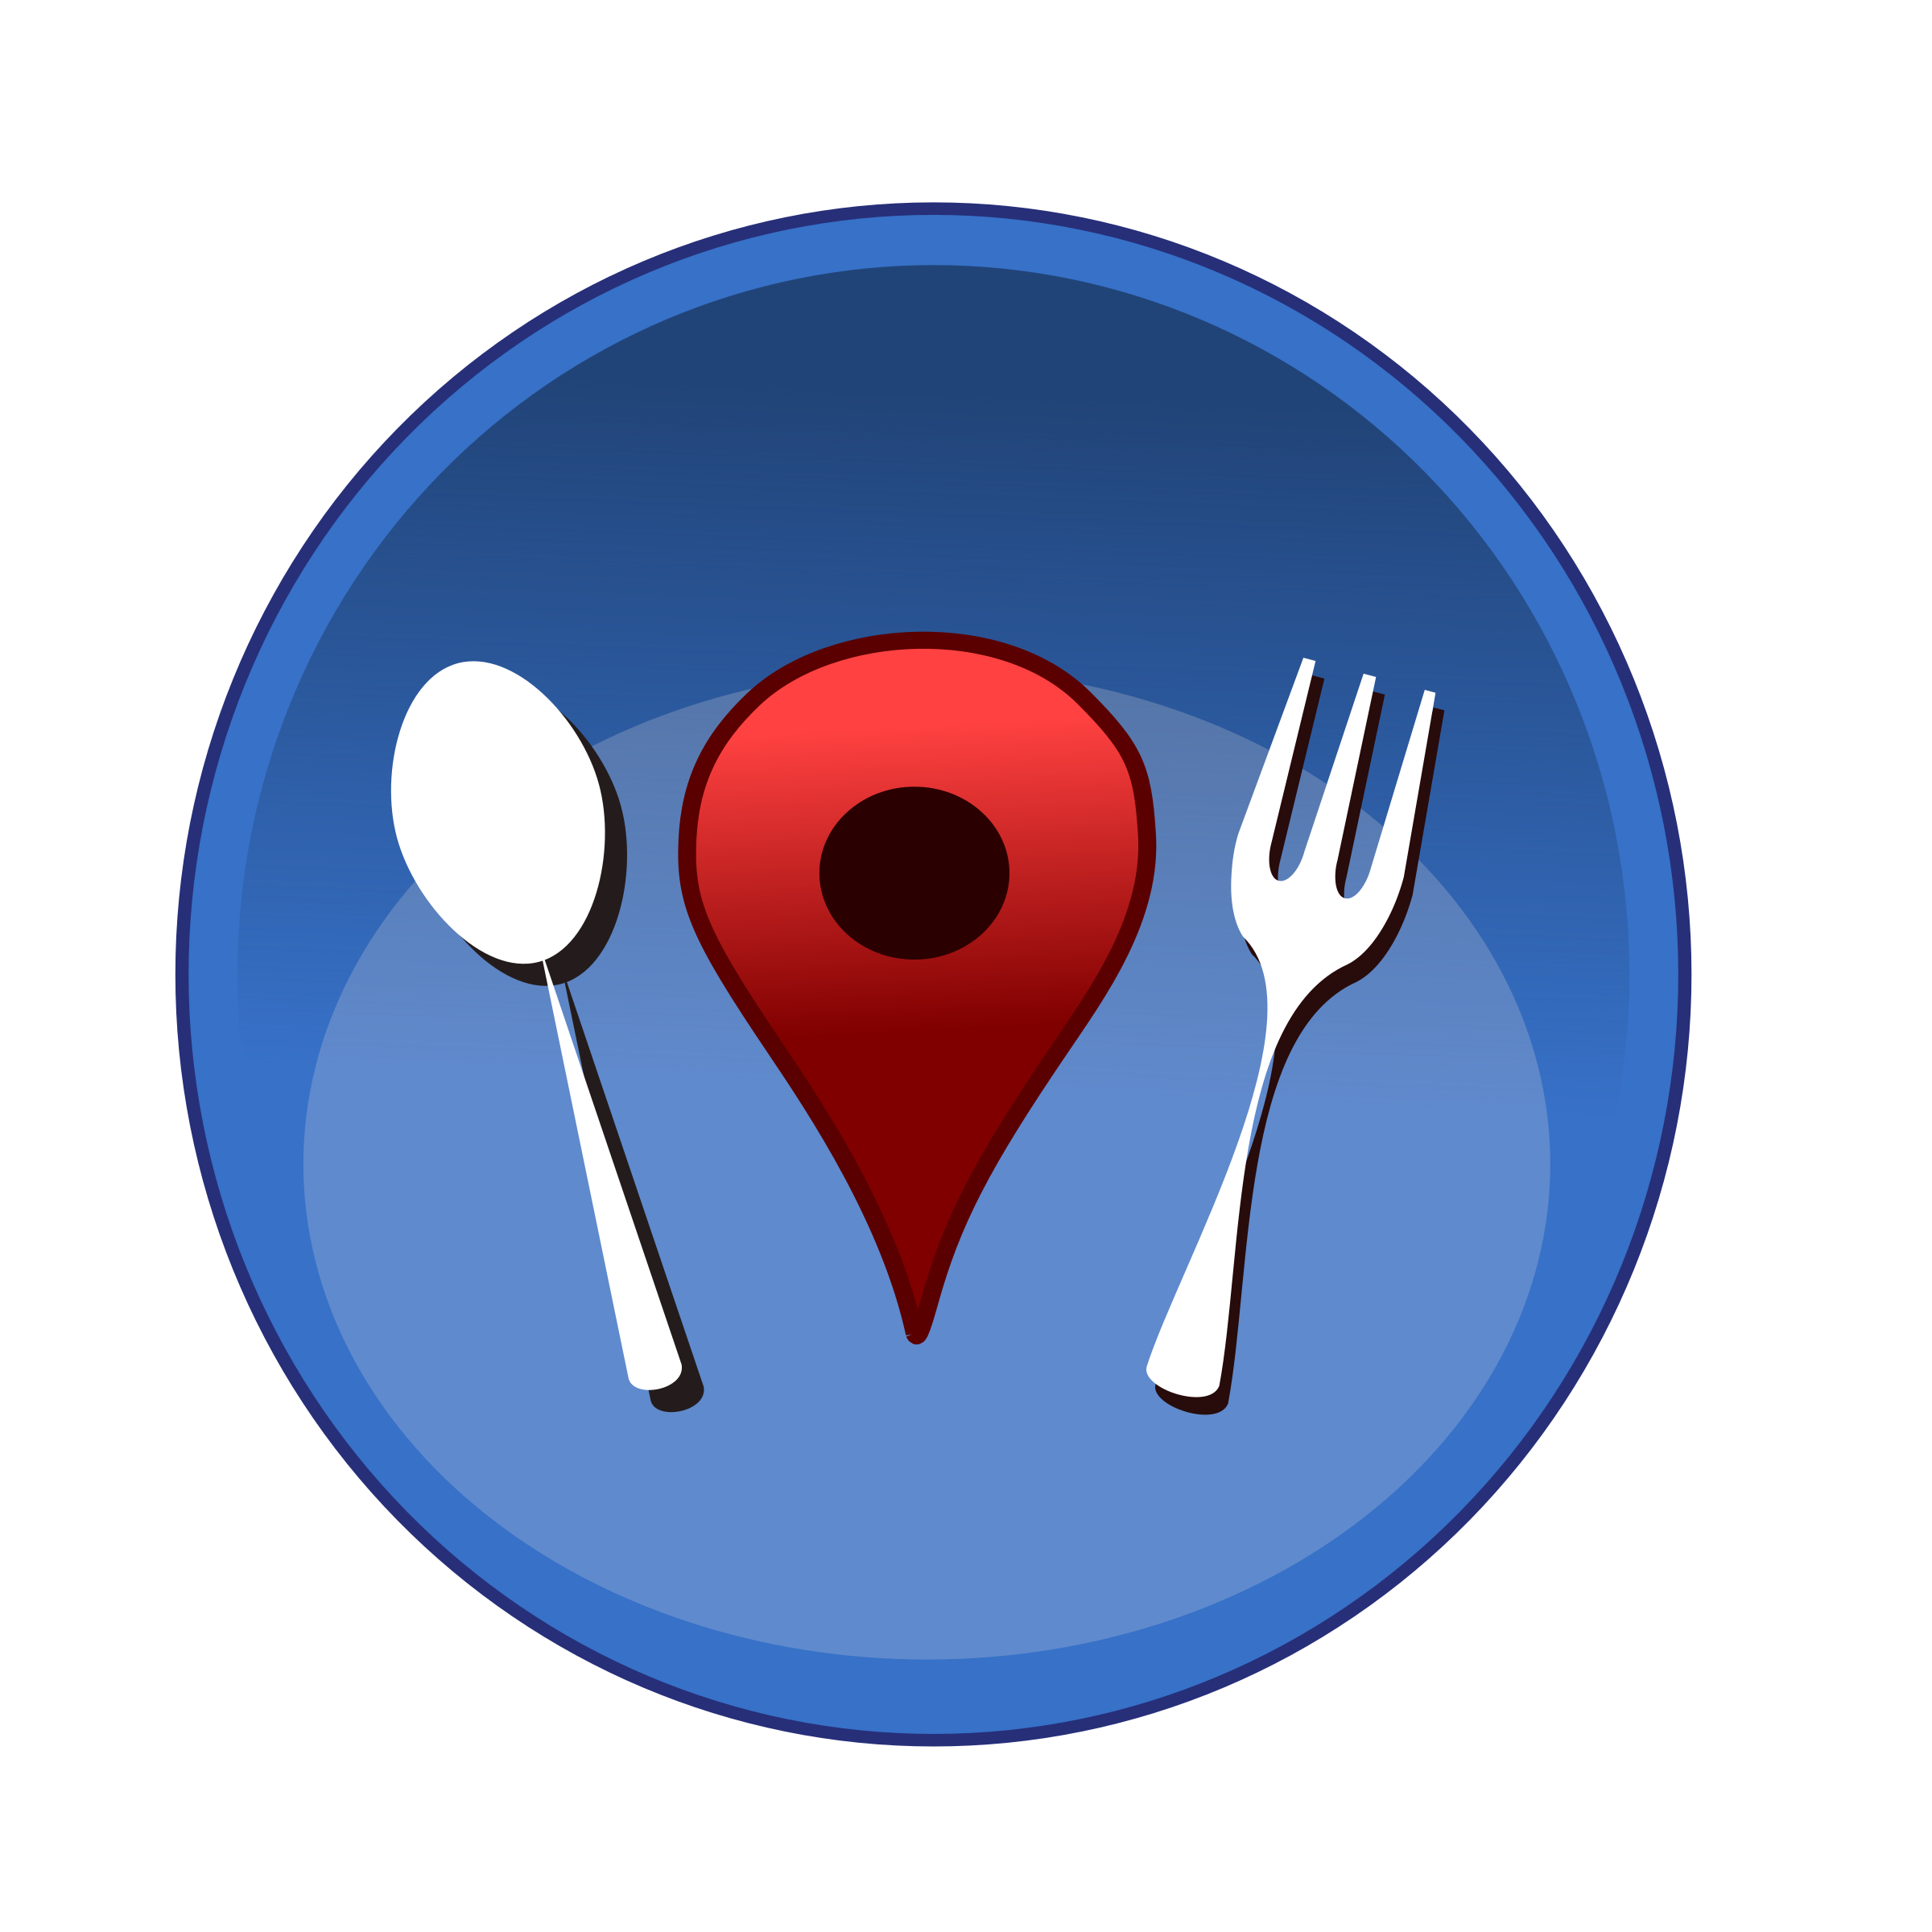 restaurant map location by netalloy